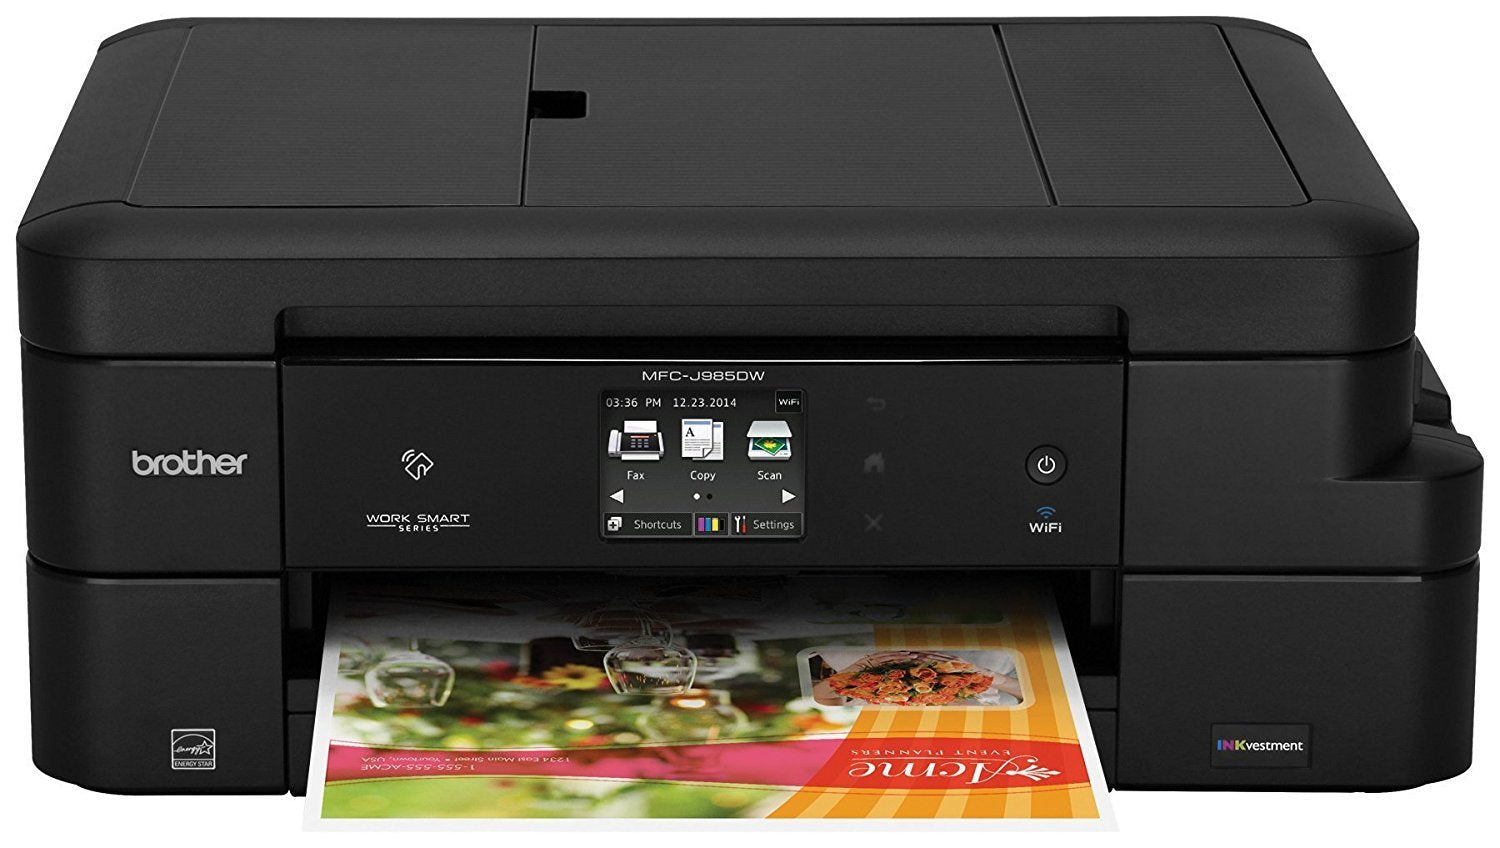 Brother MFC-J985DW Inkjet All-in-One Color Printer, Duplex Printing,  Wireless Connectivity, Amazon Dash Replenishment Enabled, Cost-Effective  Color